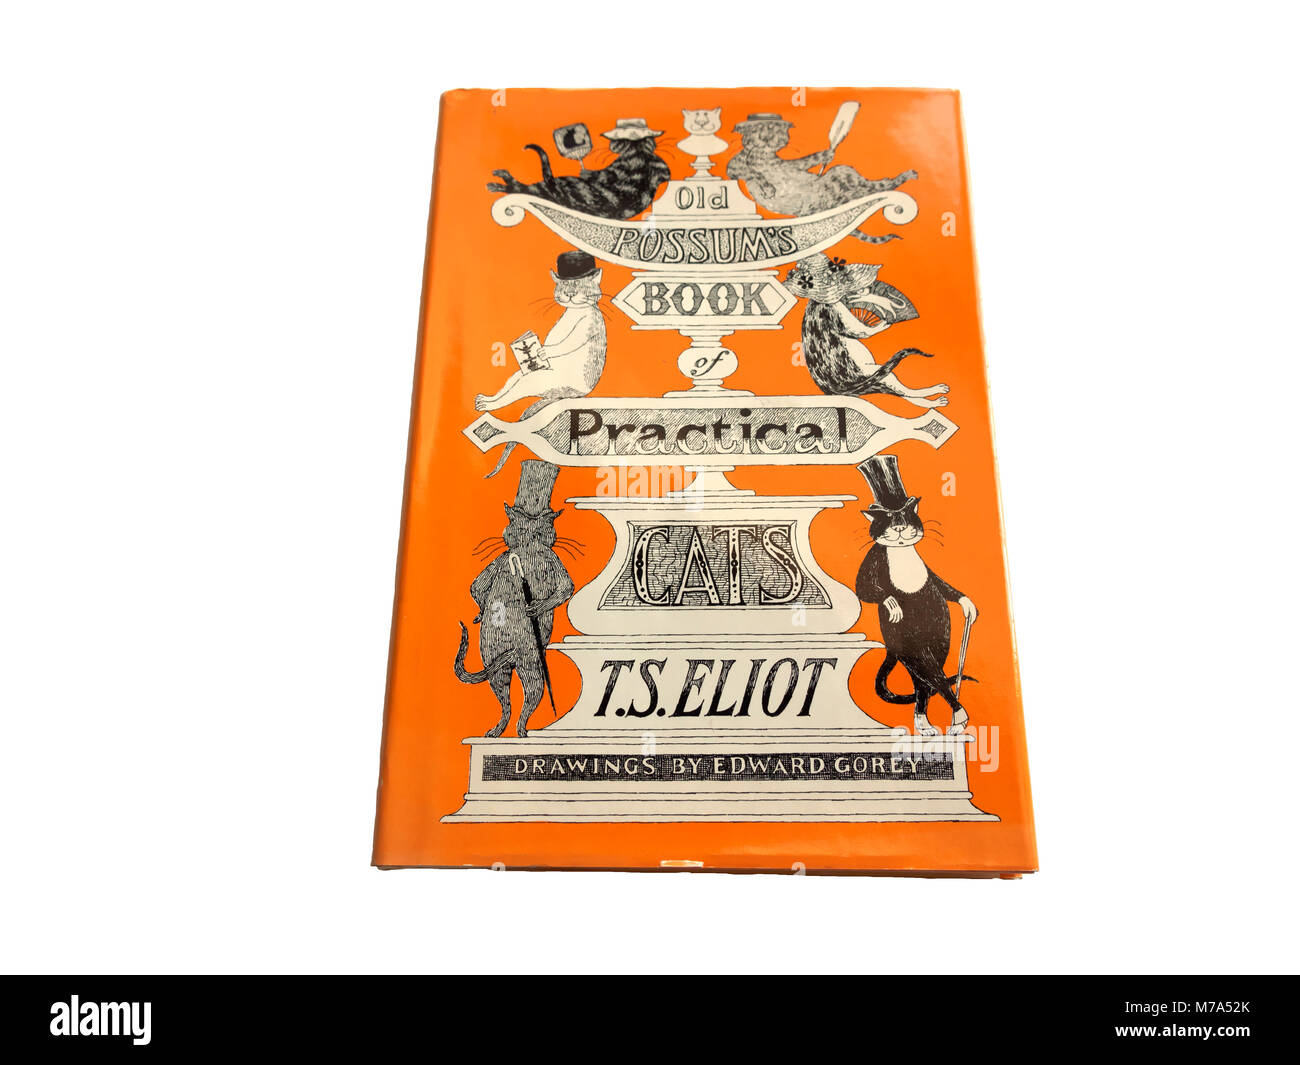 Old Possums Book of Practical Cats by TS Eliot Stock Photo